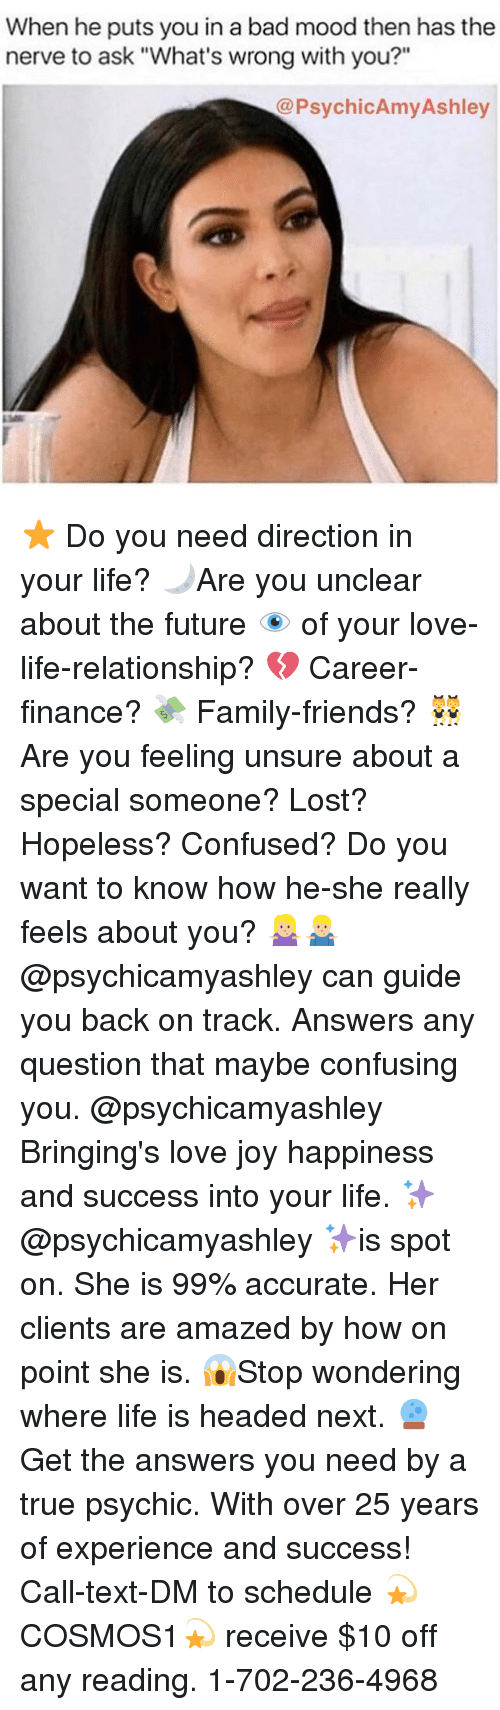 """ashleys: When he puts you in a bad mood then has the  nerve to ask """"What's wrong with you?""""  @PsychicAmy Ashley ⭐️ Do you need direction in your life? 🌙Are you unclear about the future 👁 of your love-life-relationship? 💔 Career-finance? 💸 Family-friends? 👯 Are you feeling unsure about a special someone? Lost? Hopeless? Confused? Do you want to know how he-she really feels about you? 🤷🏼♀️🤷🏼♂️@psychicamyashley can guide you back on track. Answers any question that maybe confusing you. @psychicamyashley Bringing's love joy happiness and success into your life. ✨@psychicamyashley ✨is spot on. She is 99% accurate. Her clients are amazed by how on point she is. 😱Stop wondering where life is headed next. 🔮 Get the answers you need by a true psychic. With over 25 years of experience and success! Call-text-DM to schedule 💫COSMOS1💫 receive $10 off any reading. 1-702-236-4968"""